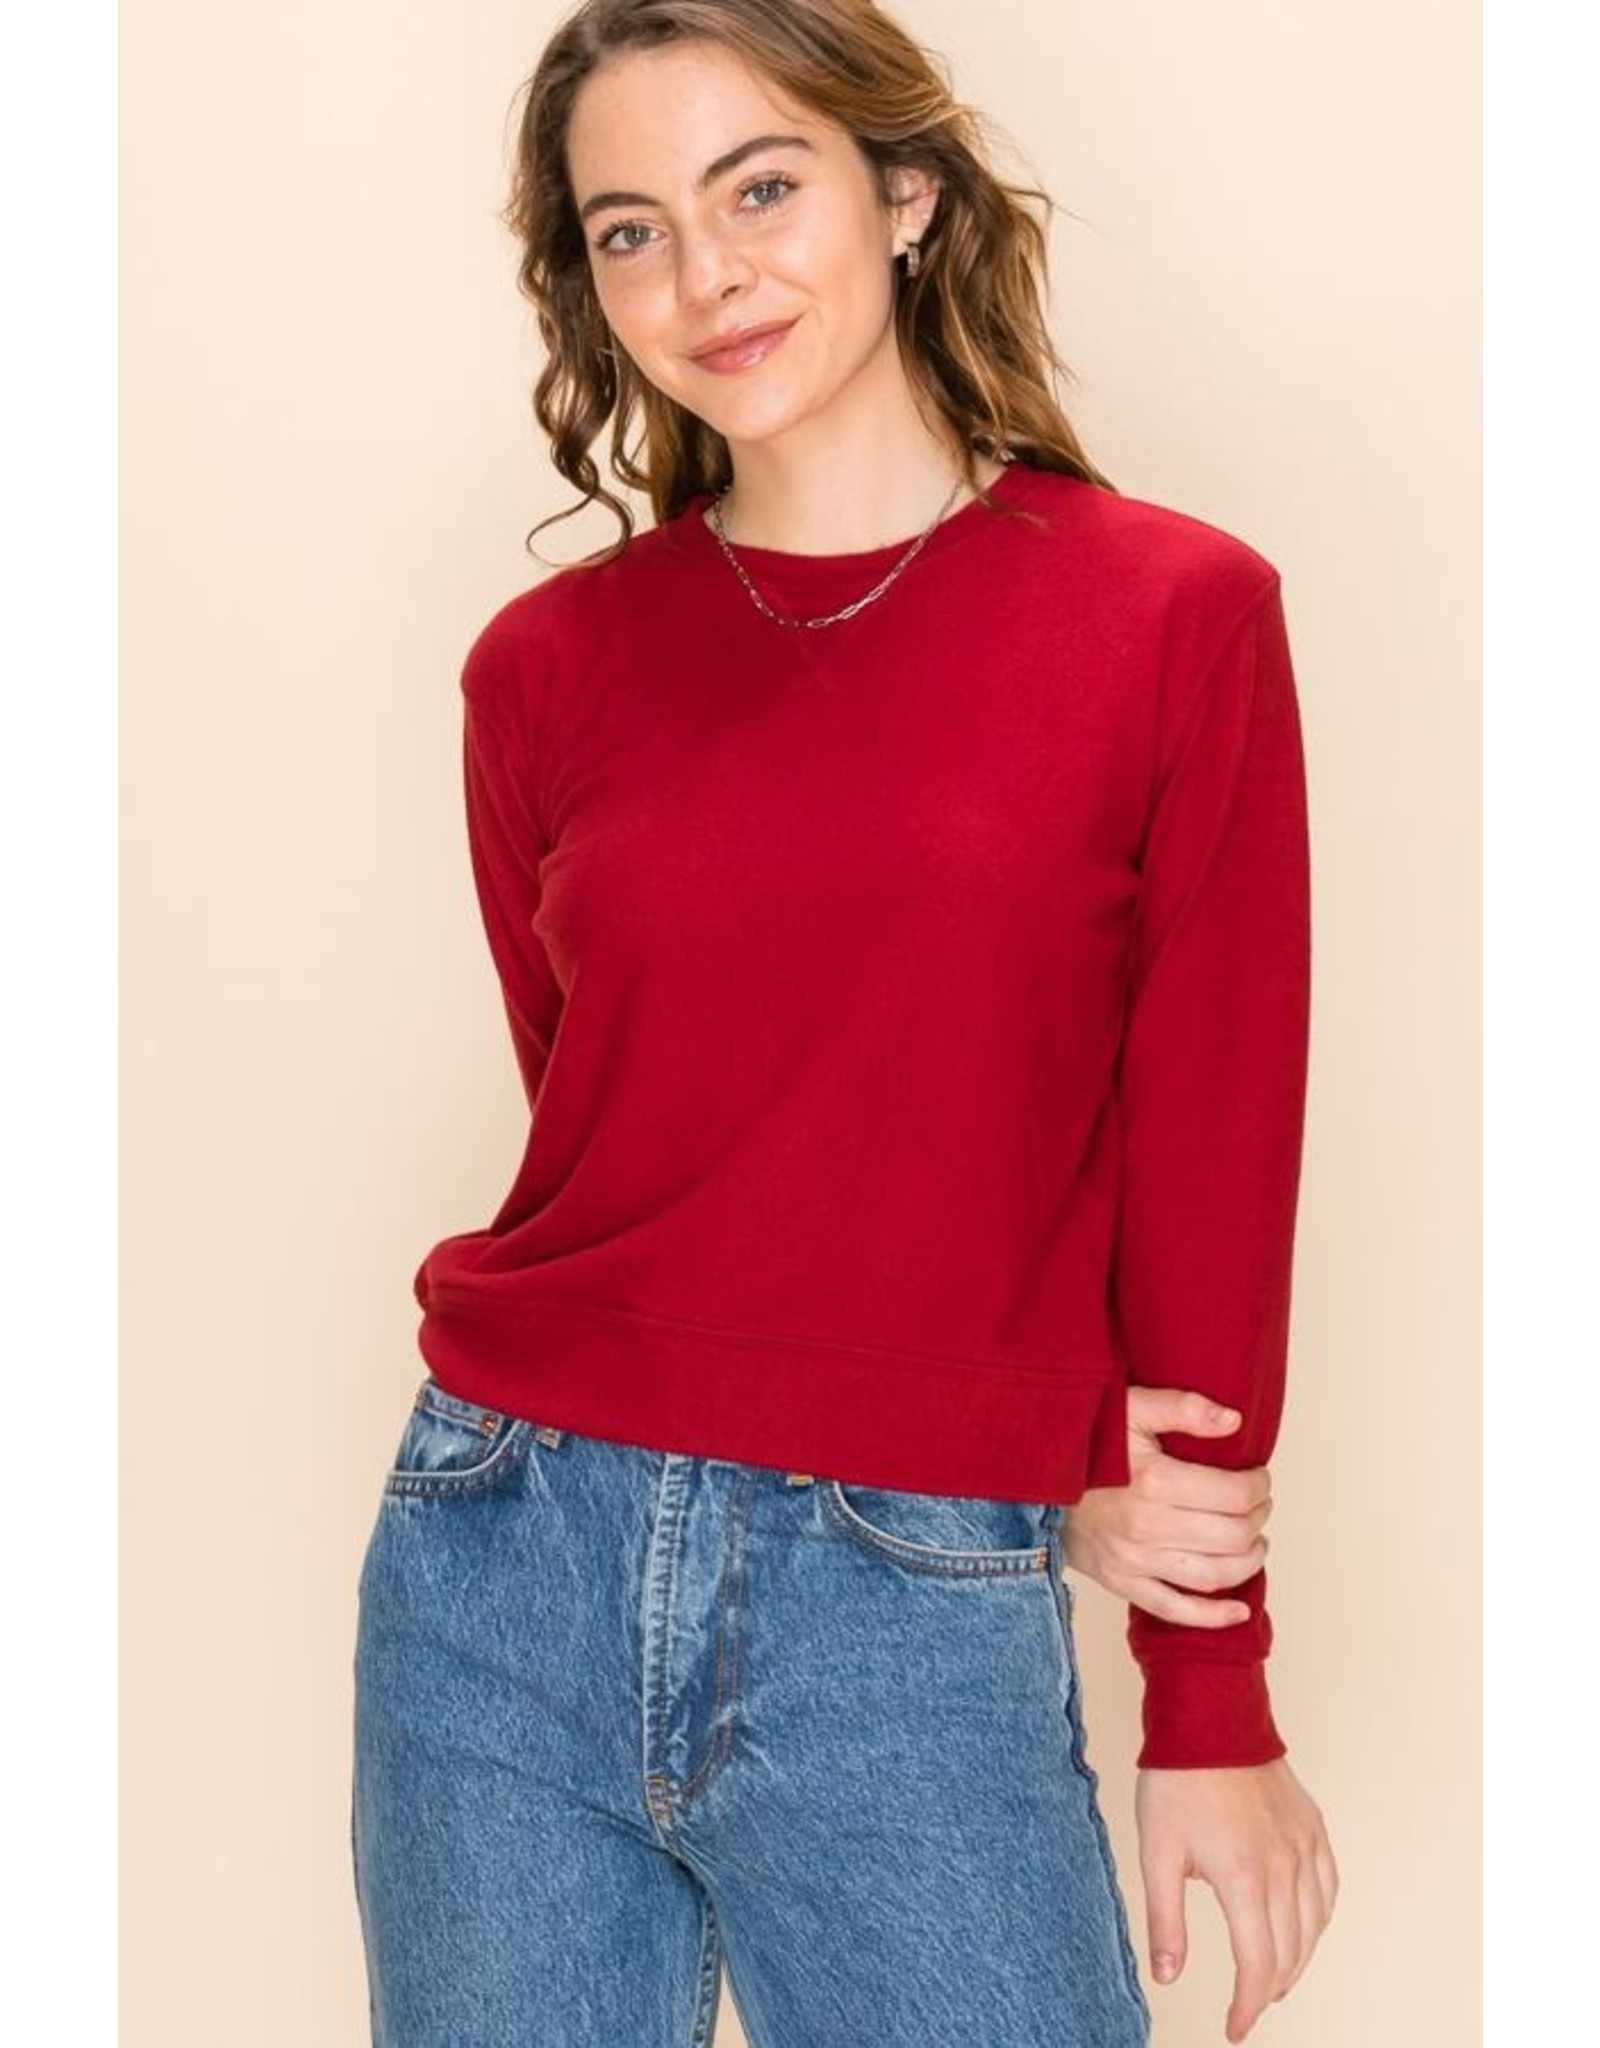 MADDIE Red Pullover